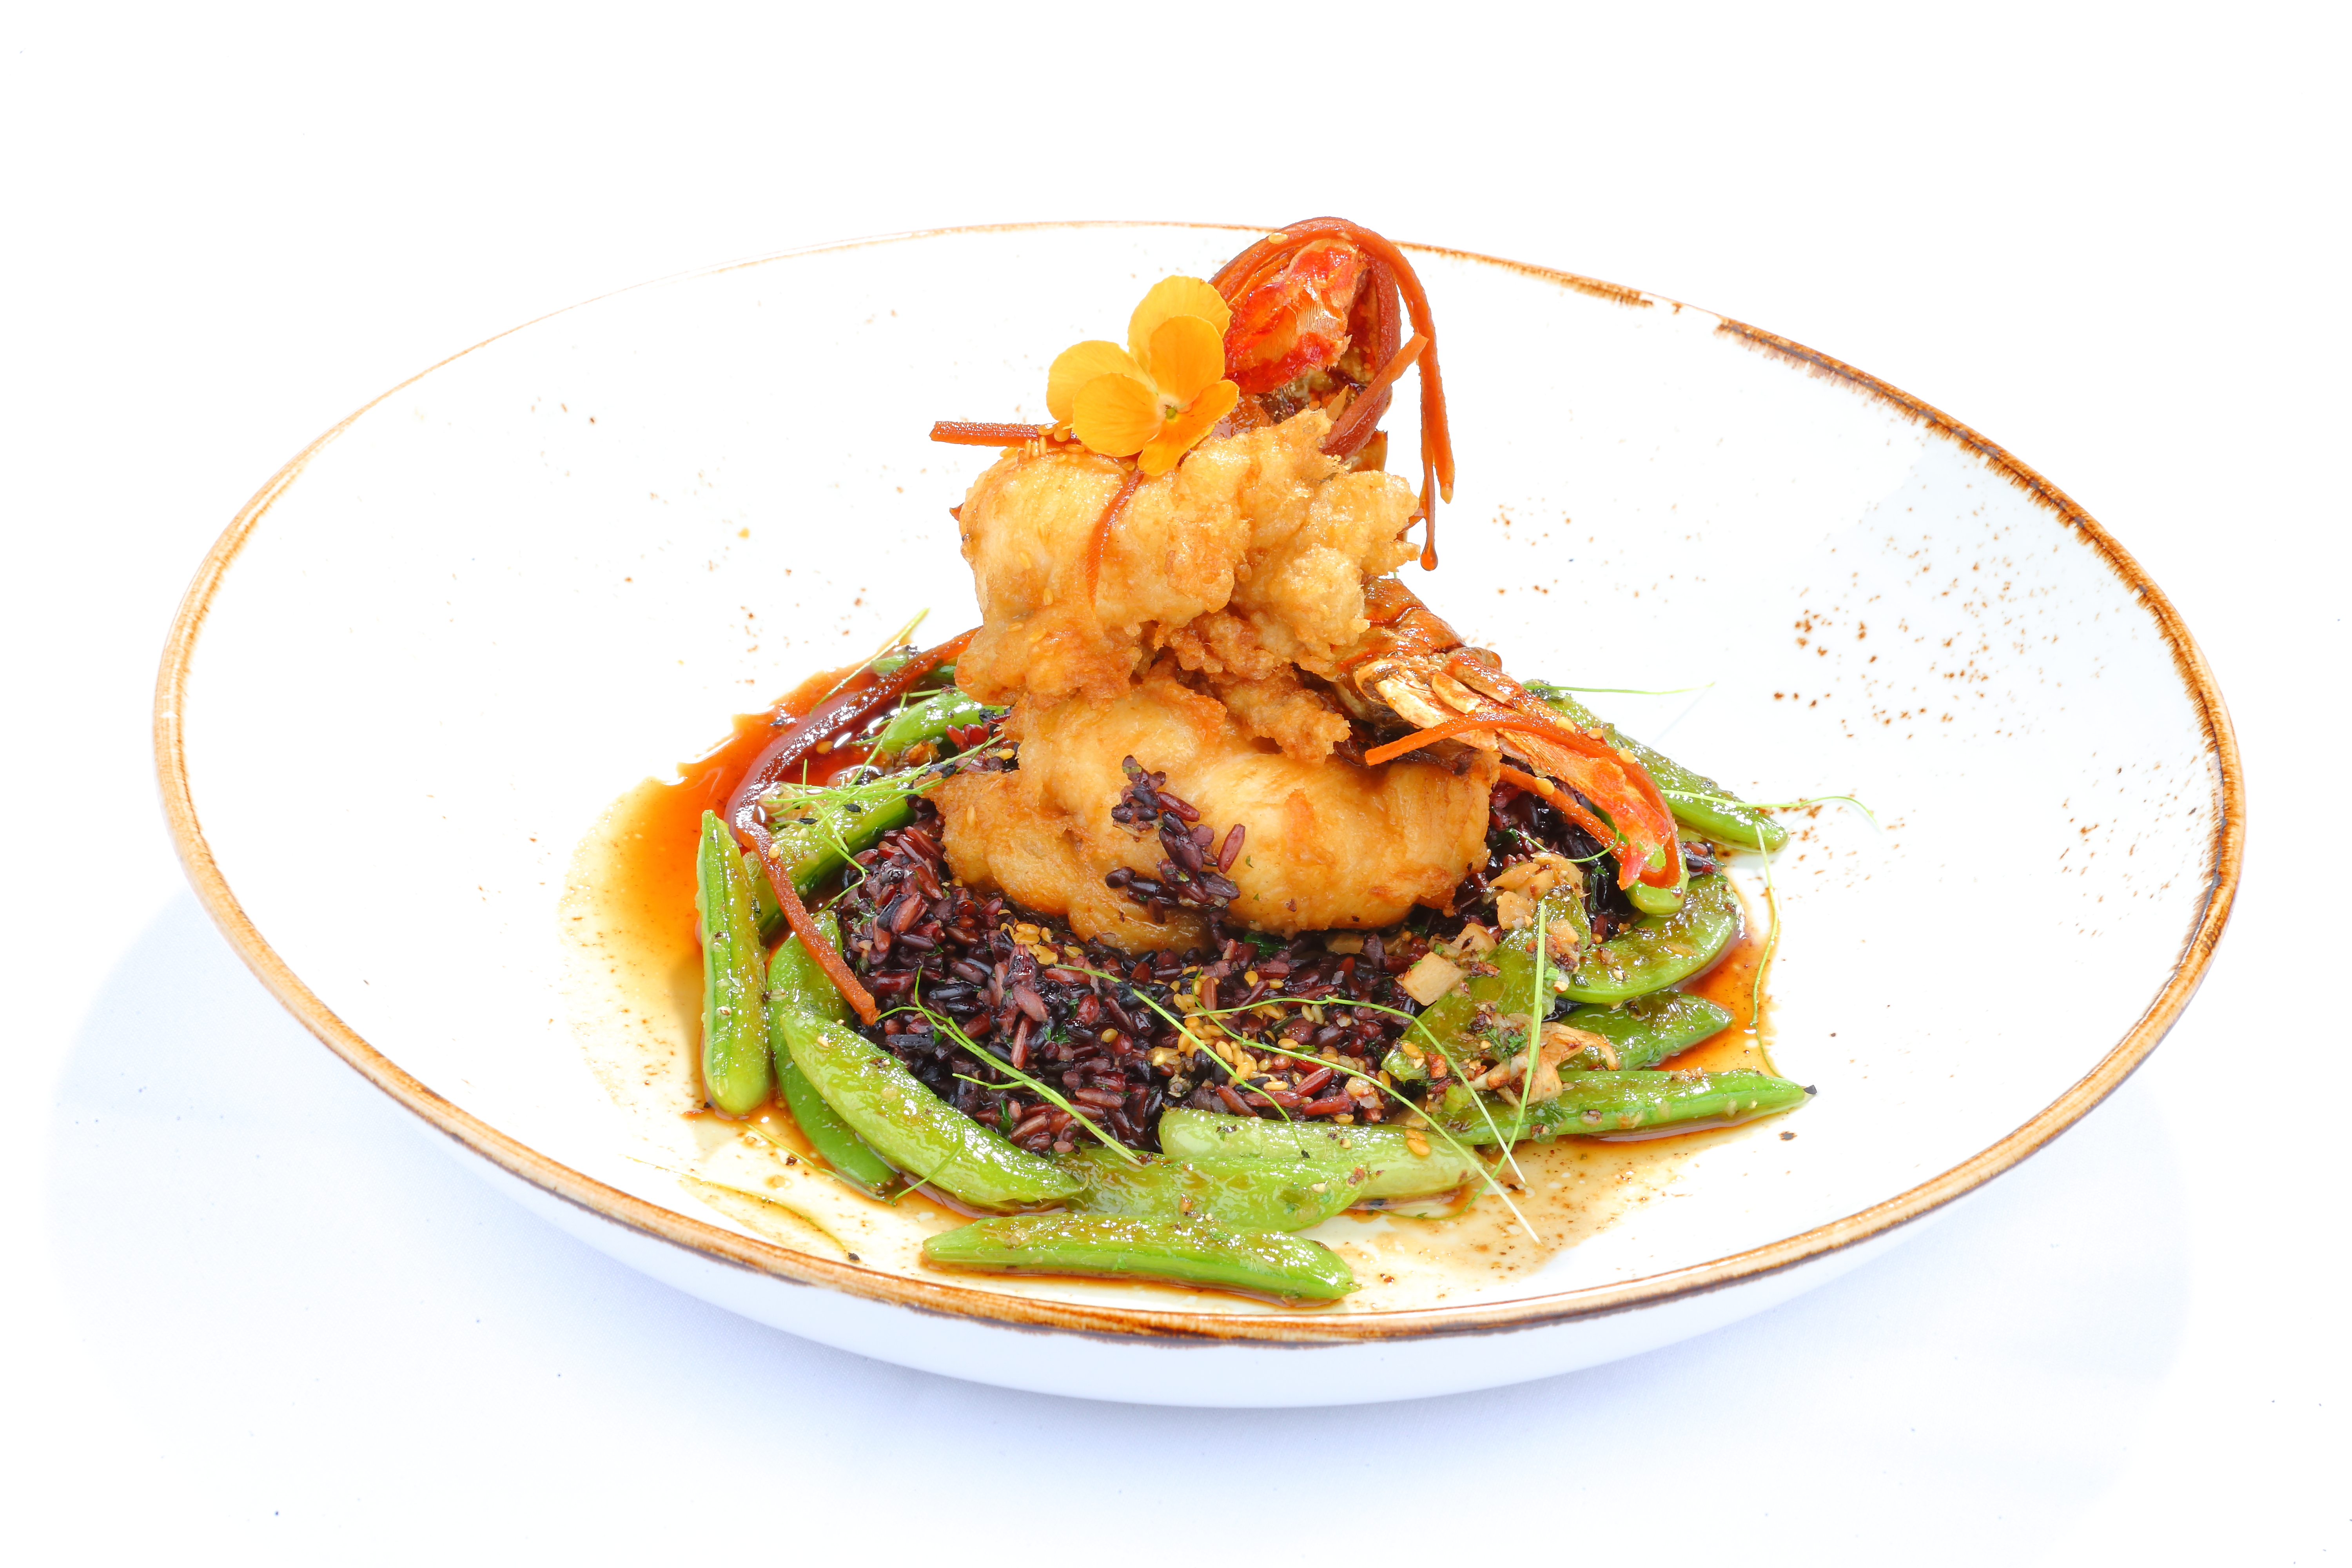 Crusted Dish Topped with a Crawfish with Snap Peas